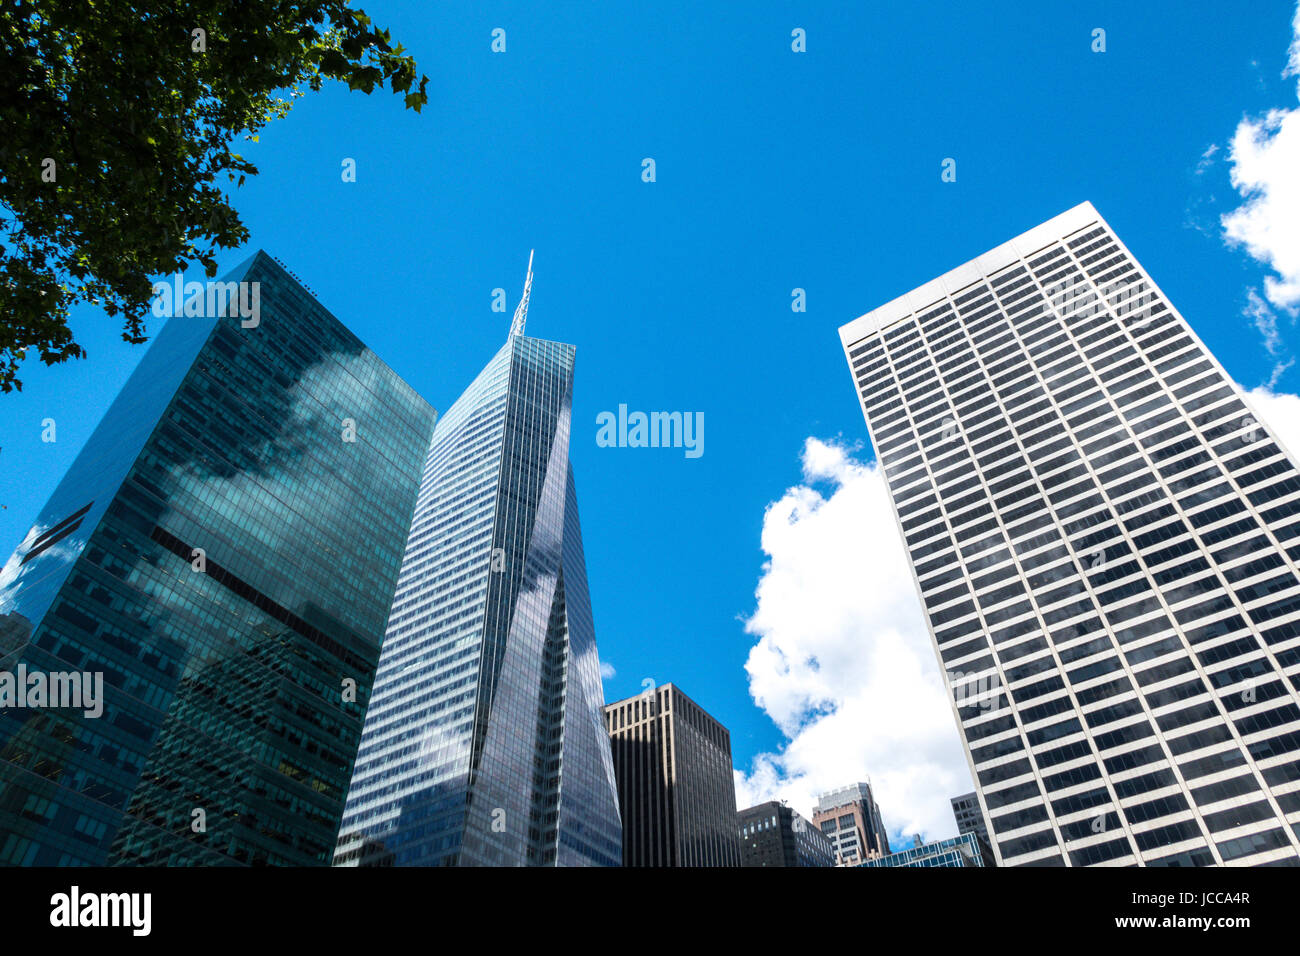 Looking up at the Skyscrapers Surrounding Bryant Park, NYC, USA - Stock Image